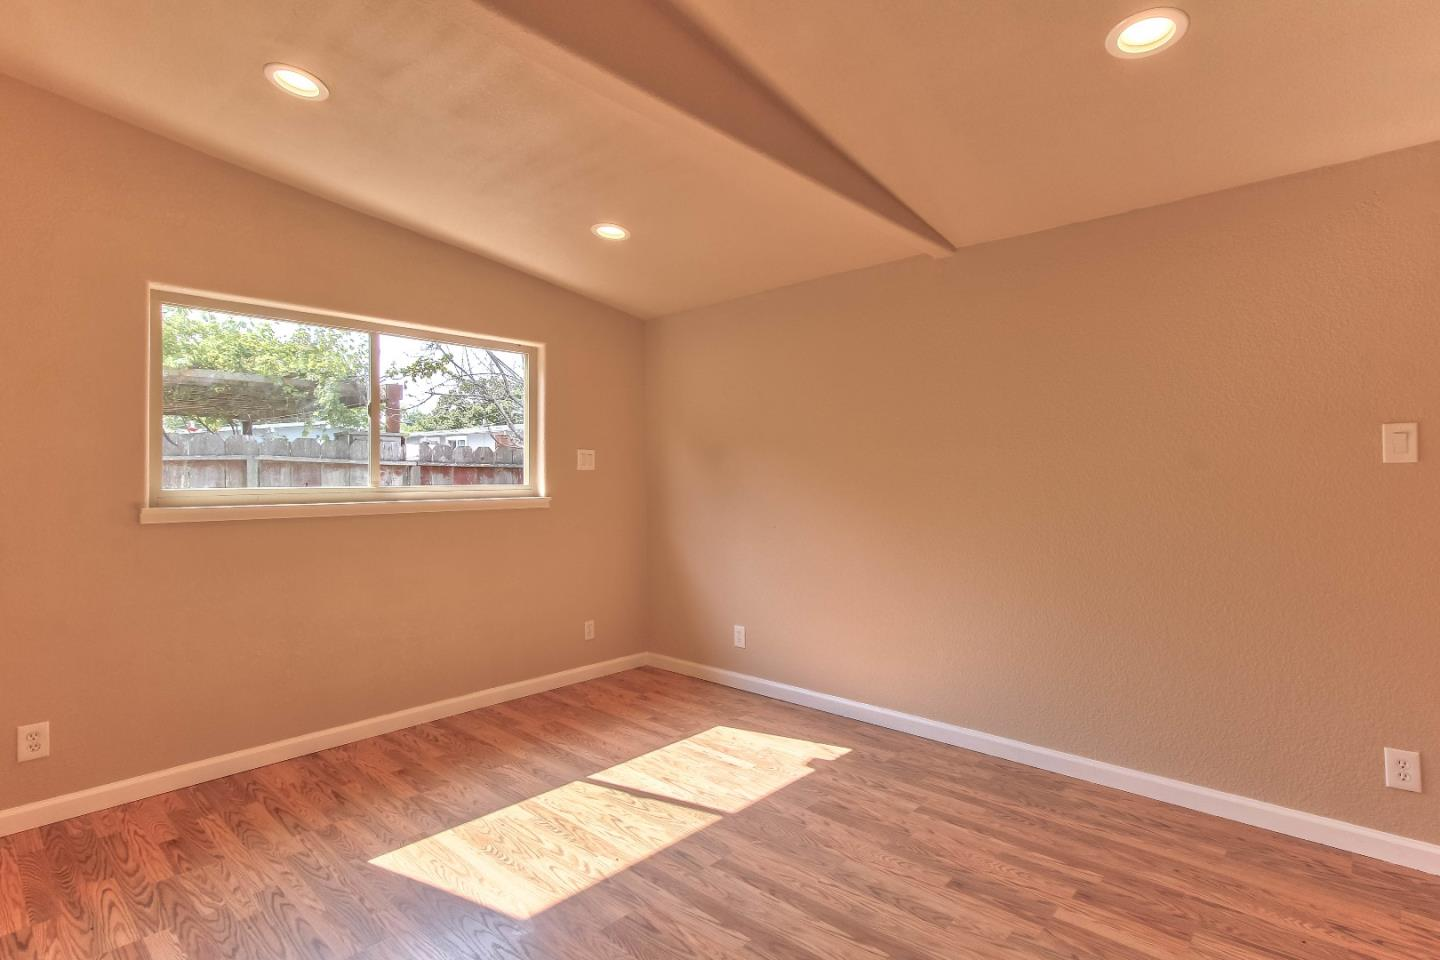 1432 Ramona Avenue Salinas, CA 93906 - MLS #: ML81718682